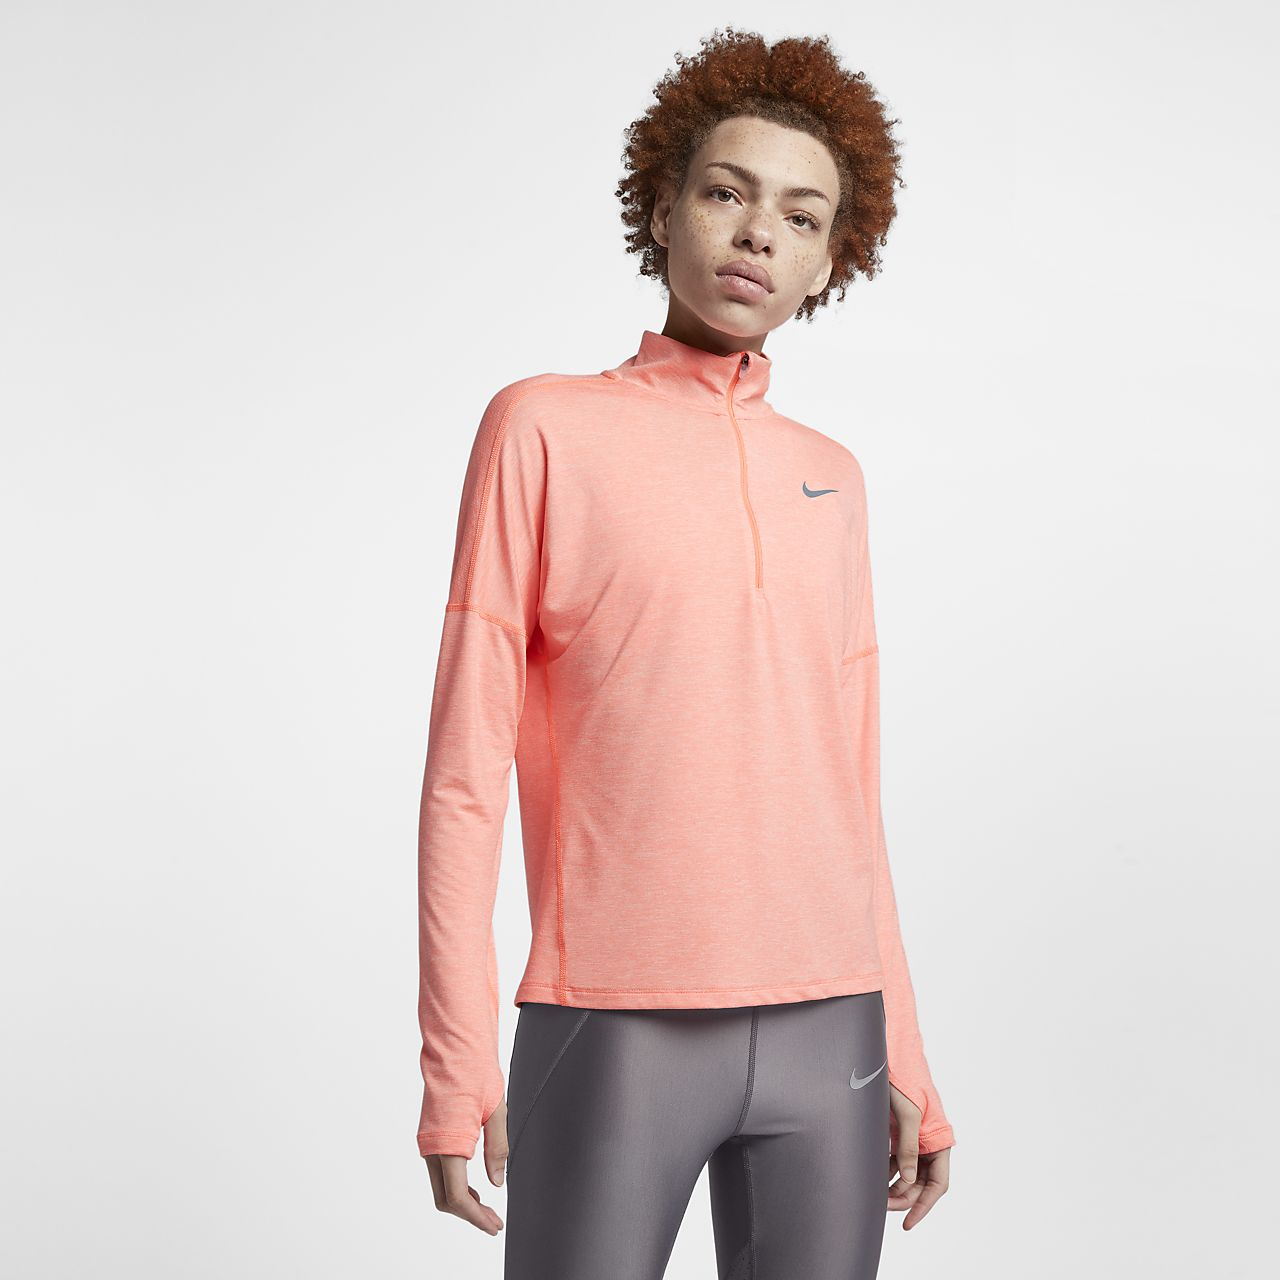 ... Nike Dri-FIT Element Women's Long Sleeve Running Half-Zip Top